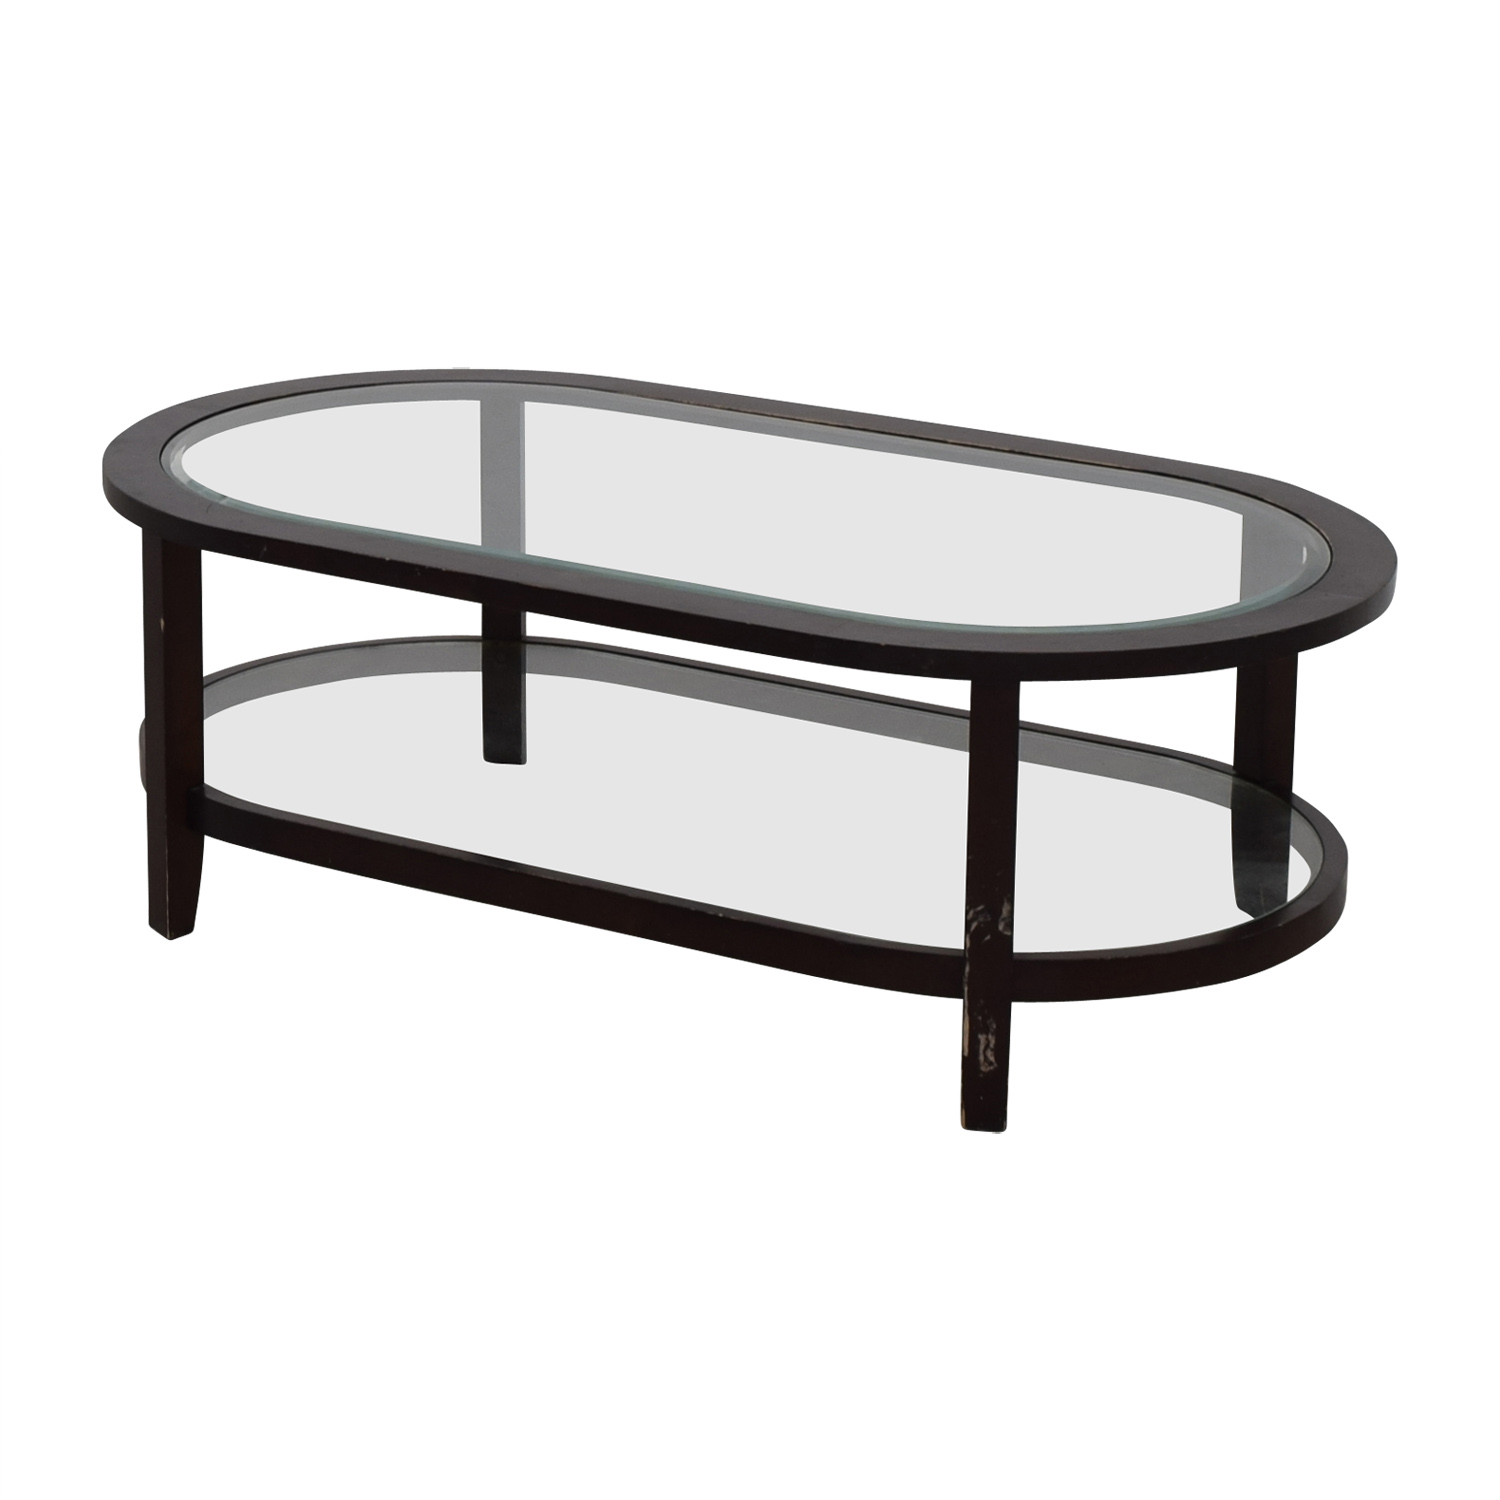 Crate & Barrel Oval Glass Coffee Table sale